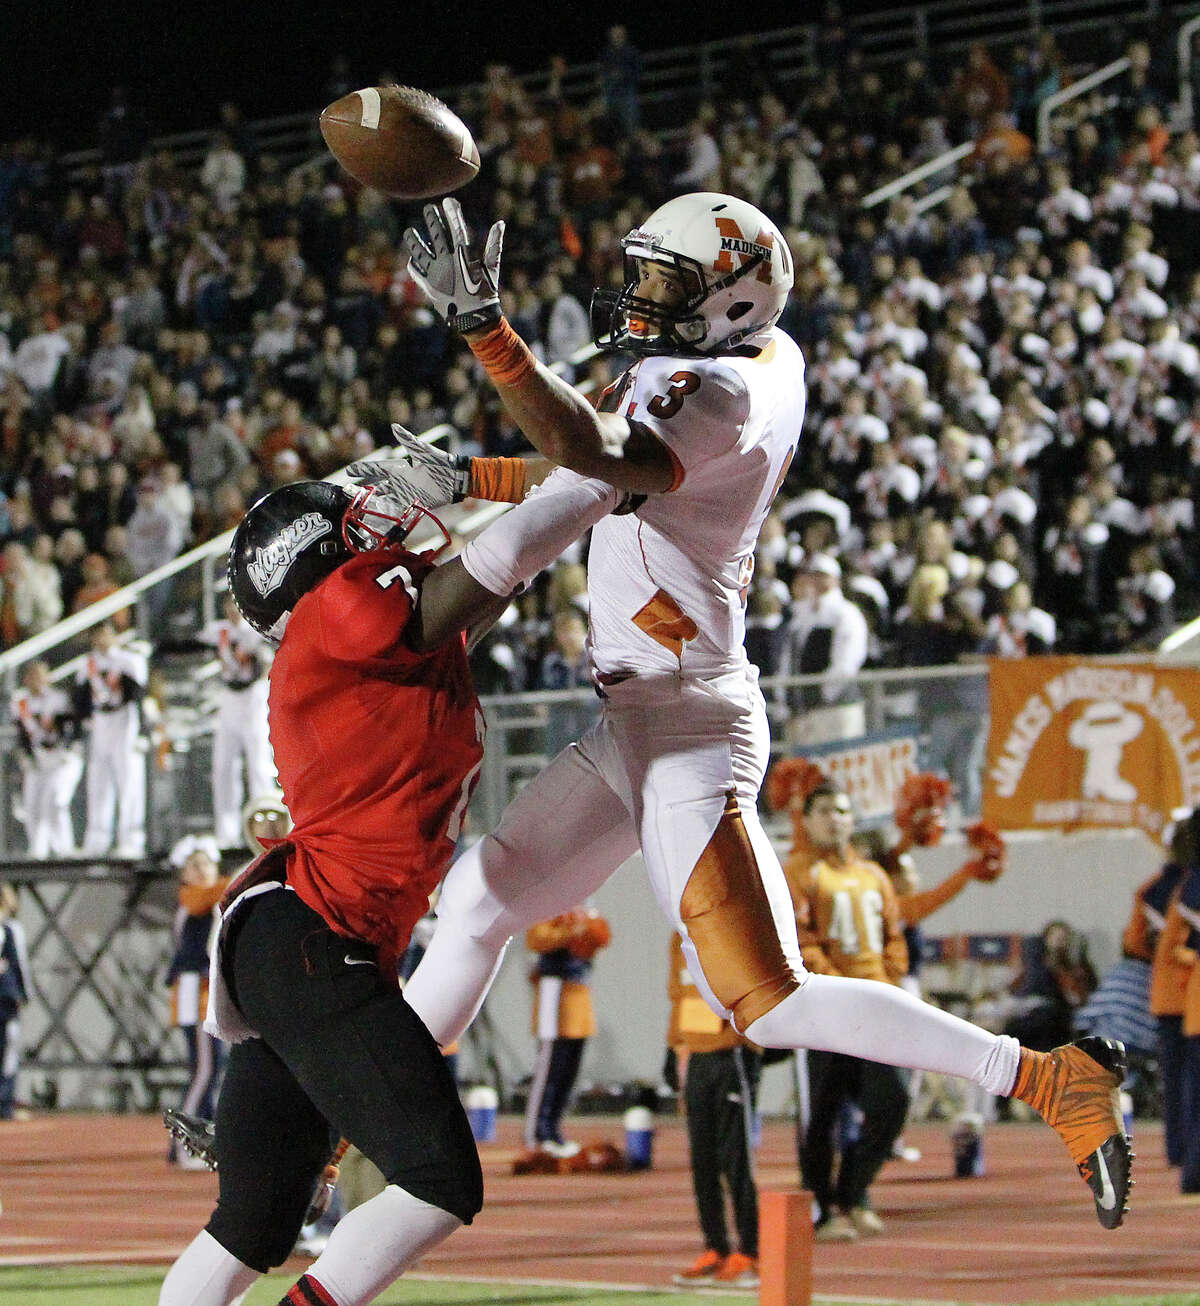 Madison's Dannon Cavil (03) manages a finger grab for a touchdown against Wagner's Robert Gardner (07) in the Class 5A District I playoff game in the second half at Rutledge Stadium on Friday, Nov. 16, 2012. Madison moves on with a 37-21 win over Wagner.